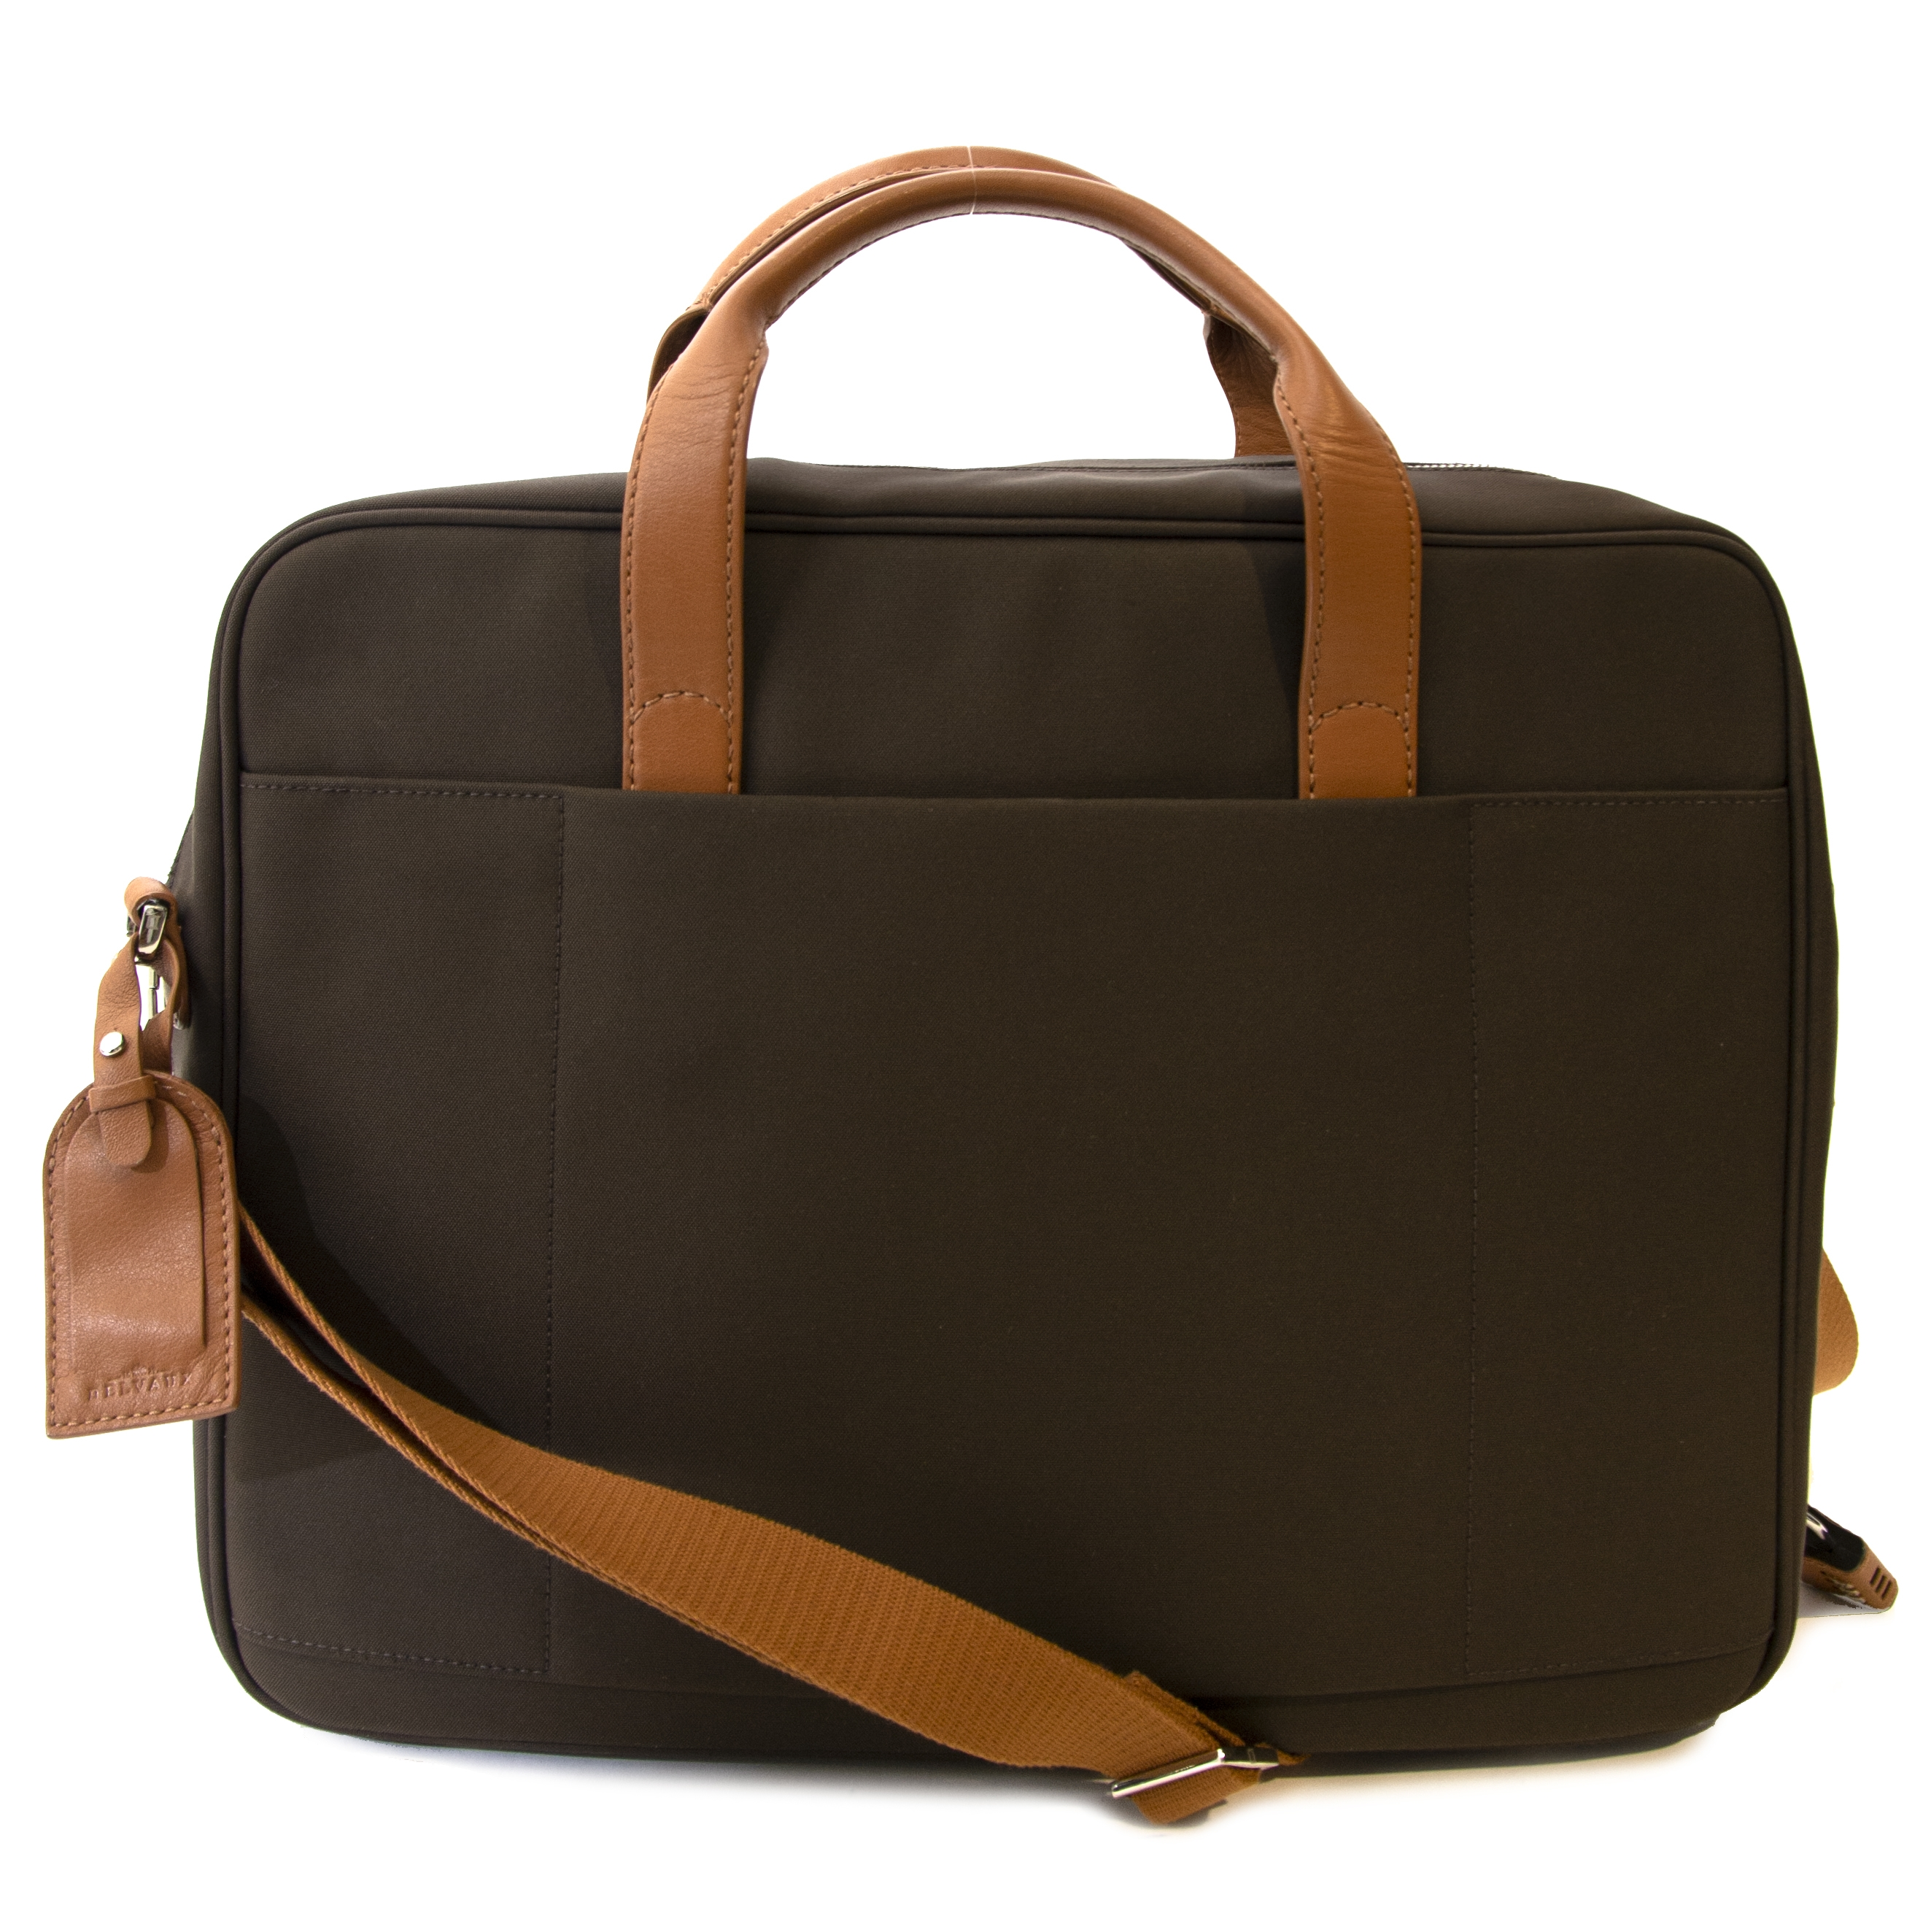 Delvaux Brown Airess Briefcase Canvas  Buy authentic secondhand Delvaux Airess briefcase canvas at the right price at Labellov safe and secure online shopping.  Koop authentieke tweedehands Delvaux Airess briefcase canvas voor de juiste prijs bij Labellov